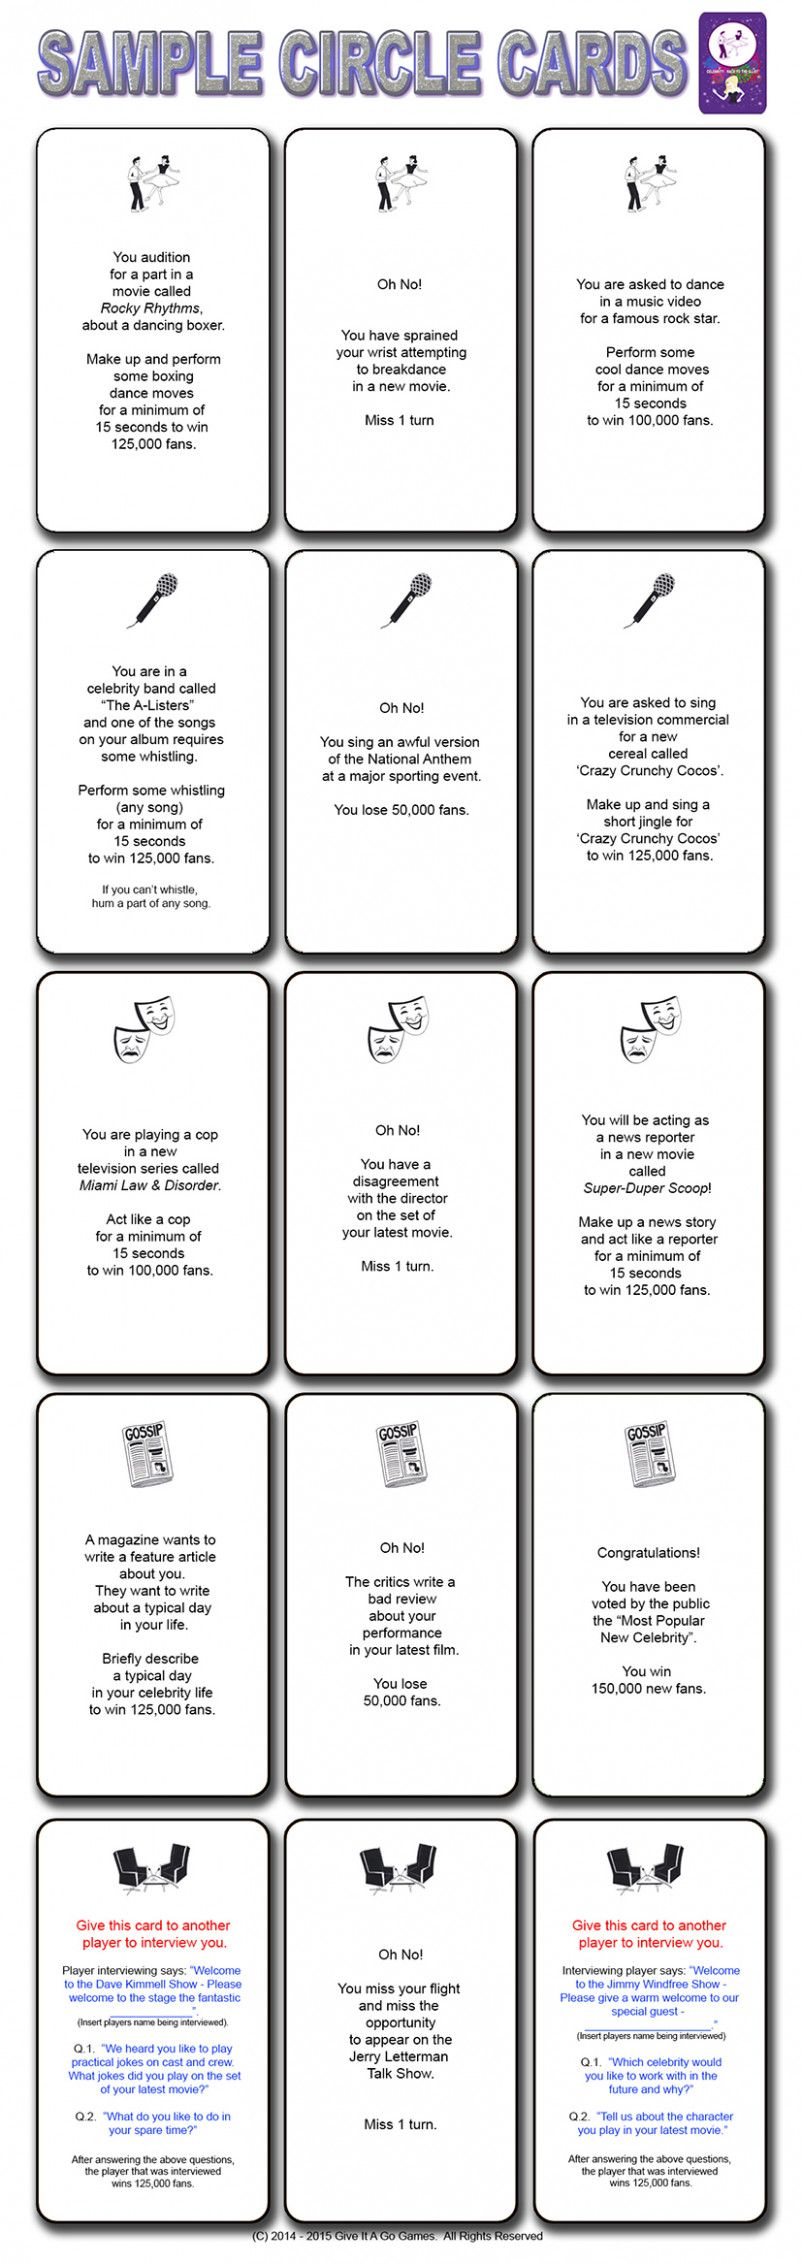 9 Awesome Card Game Name List Games Name List Card Games Cool Cards